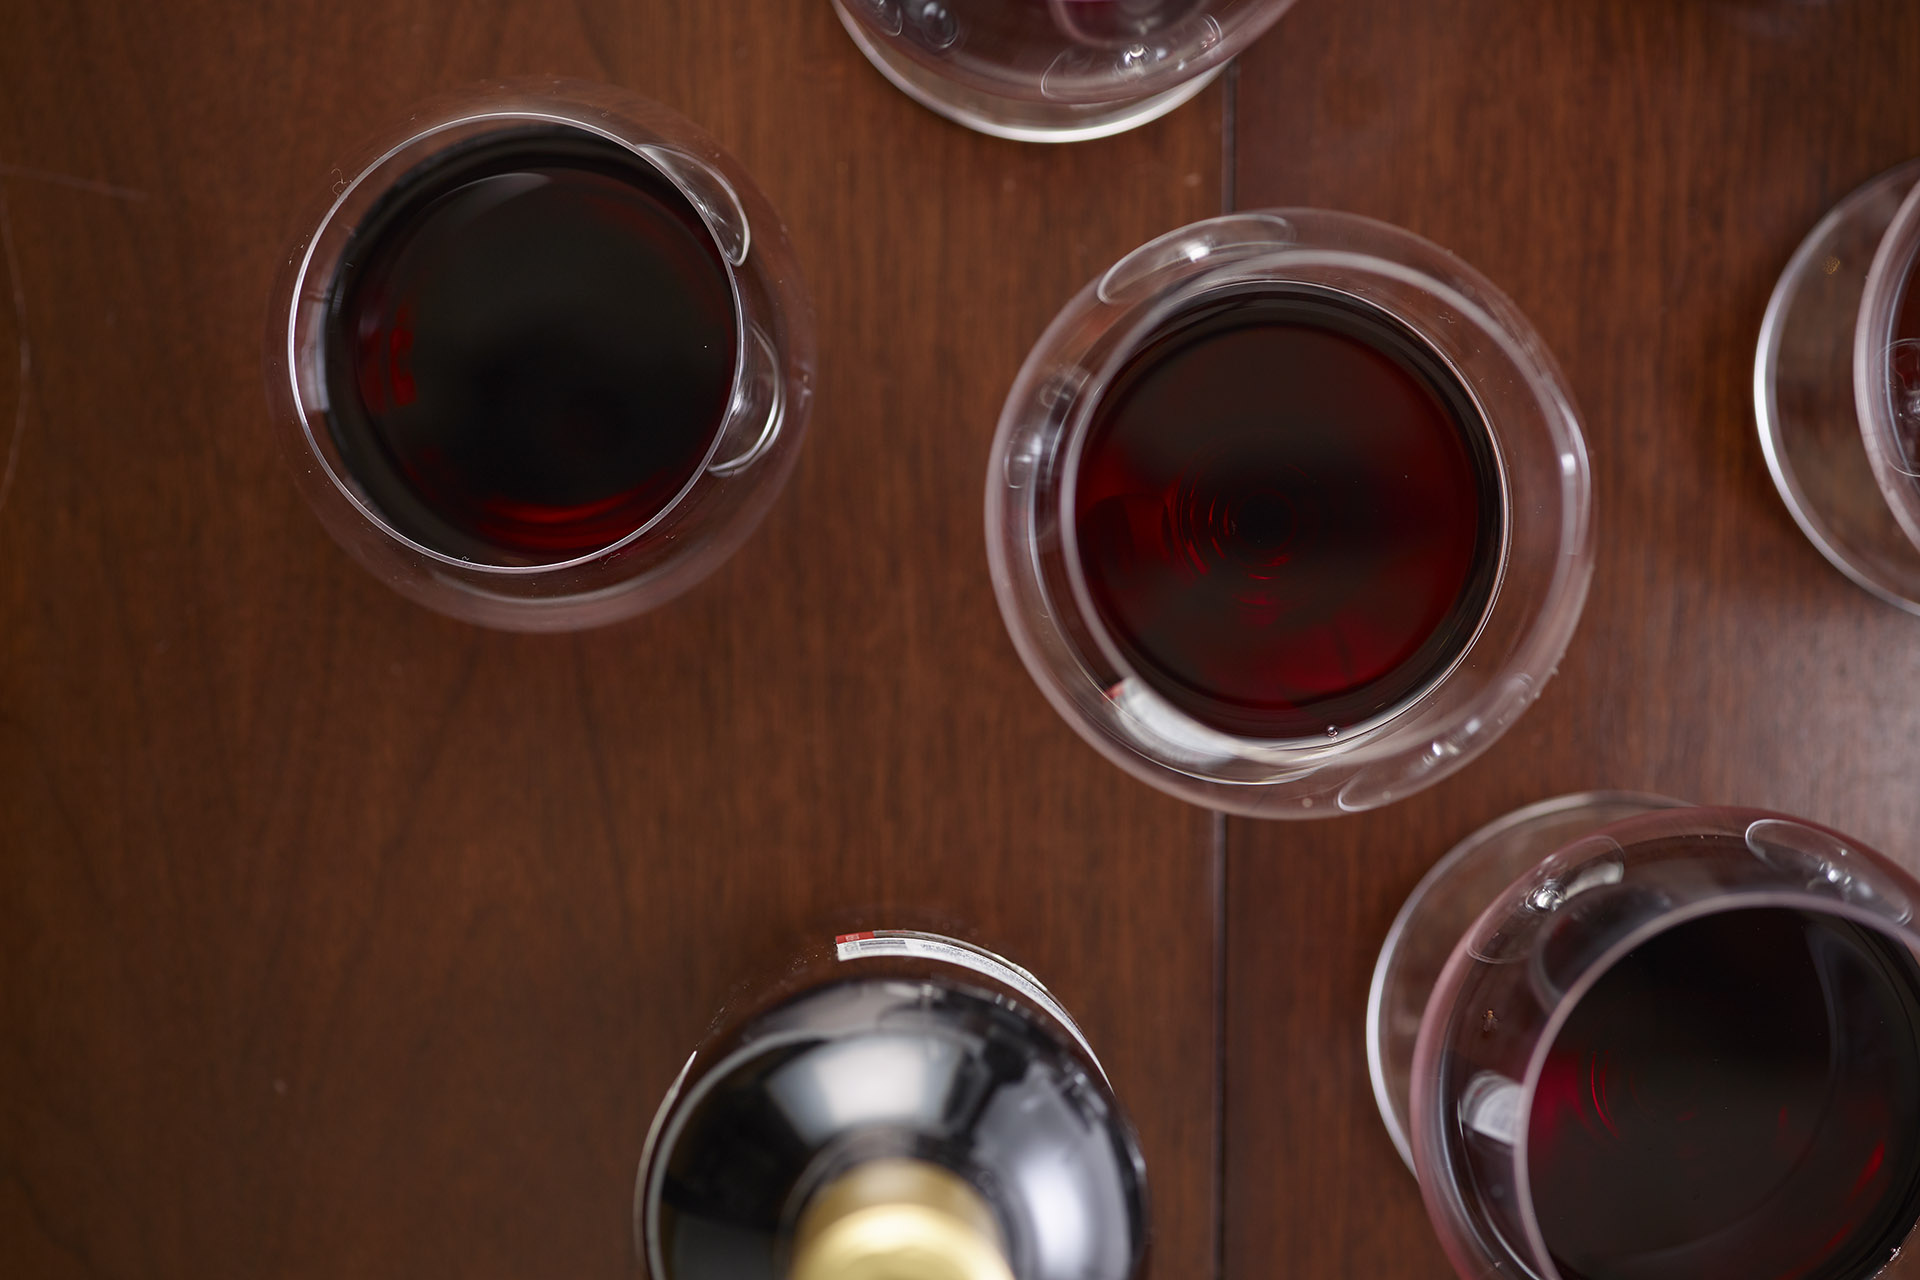 Different red wine in various glasses